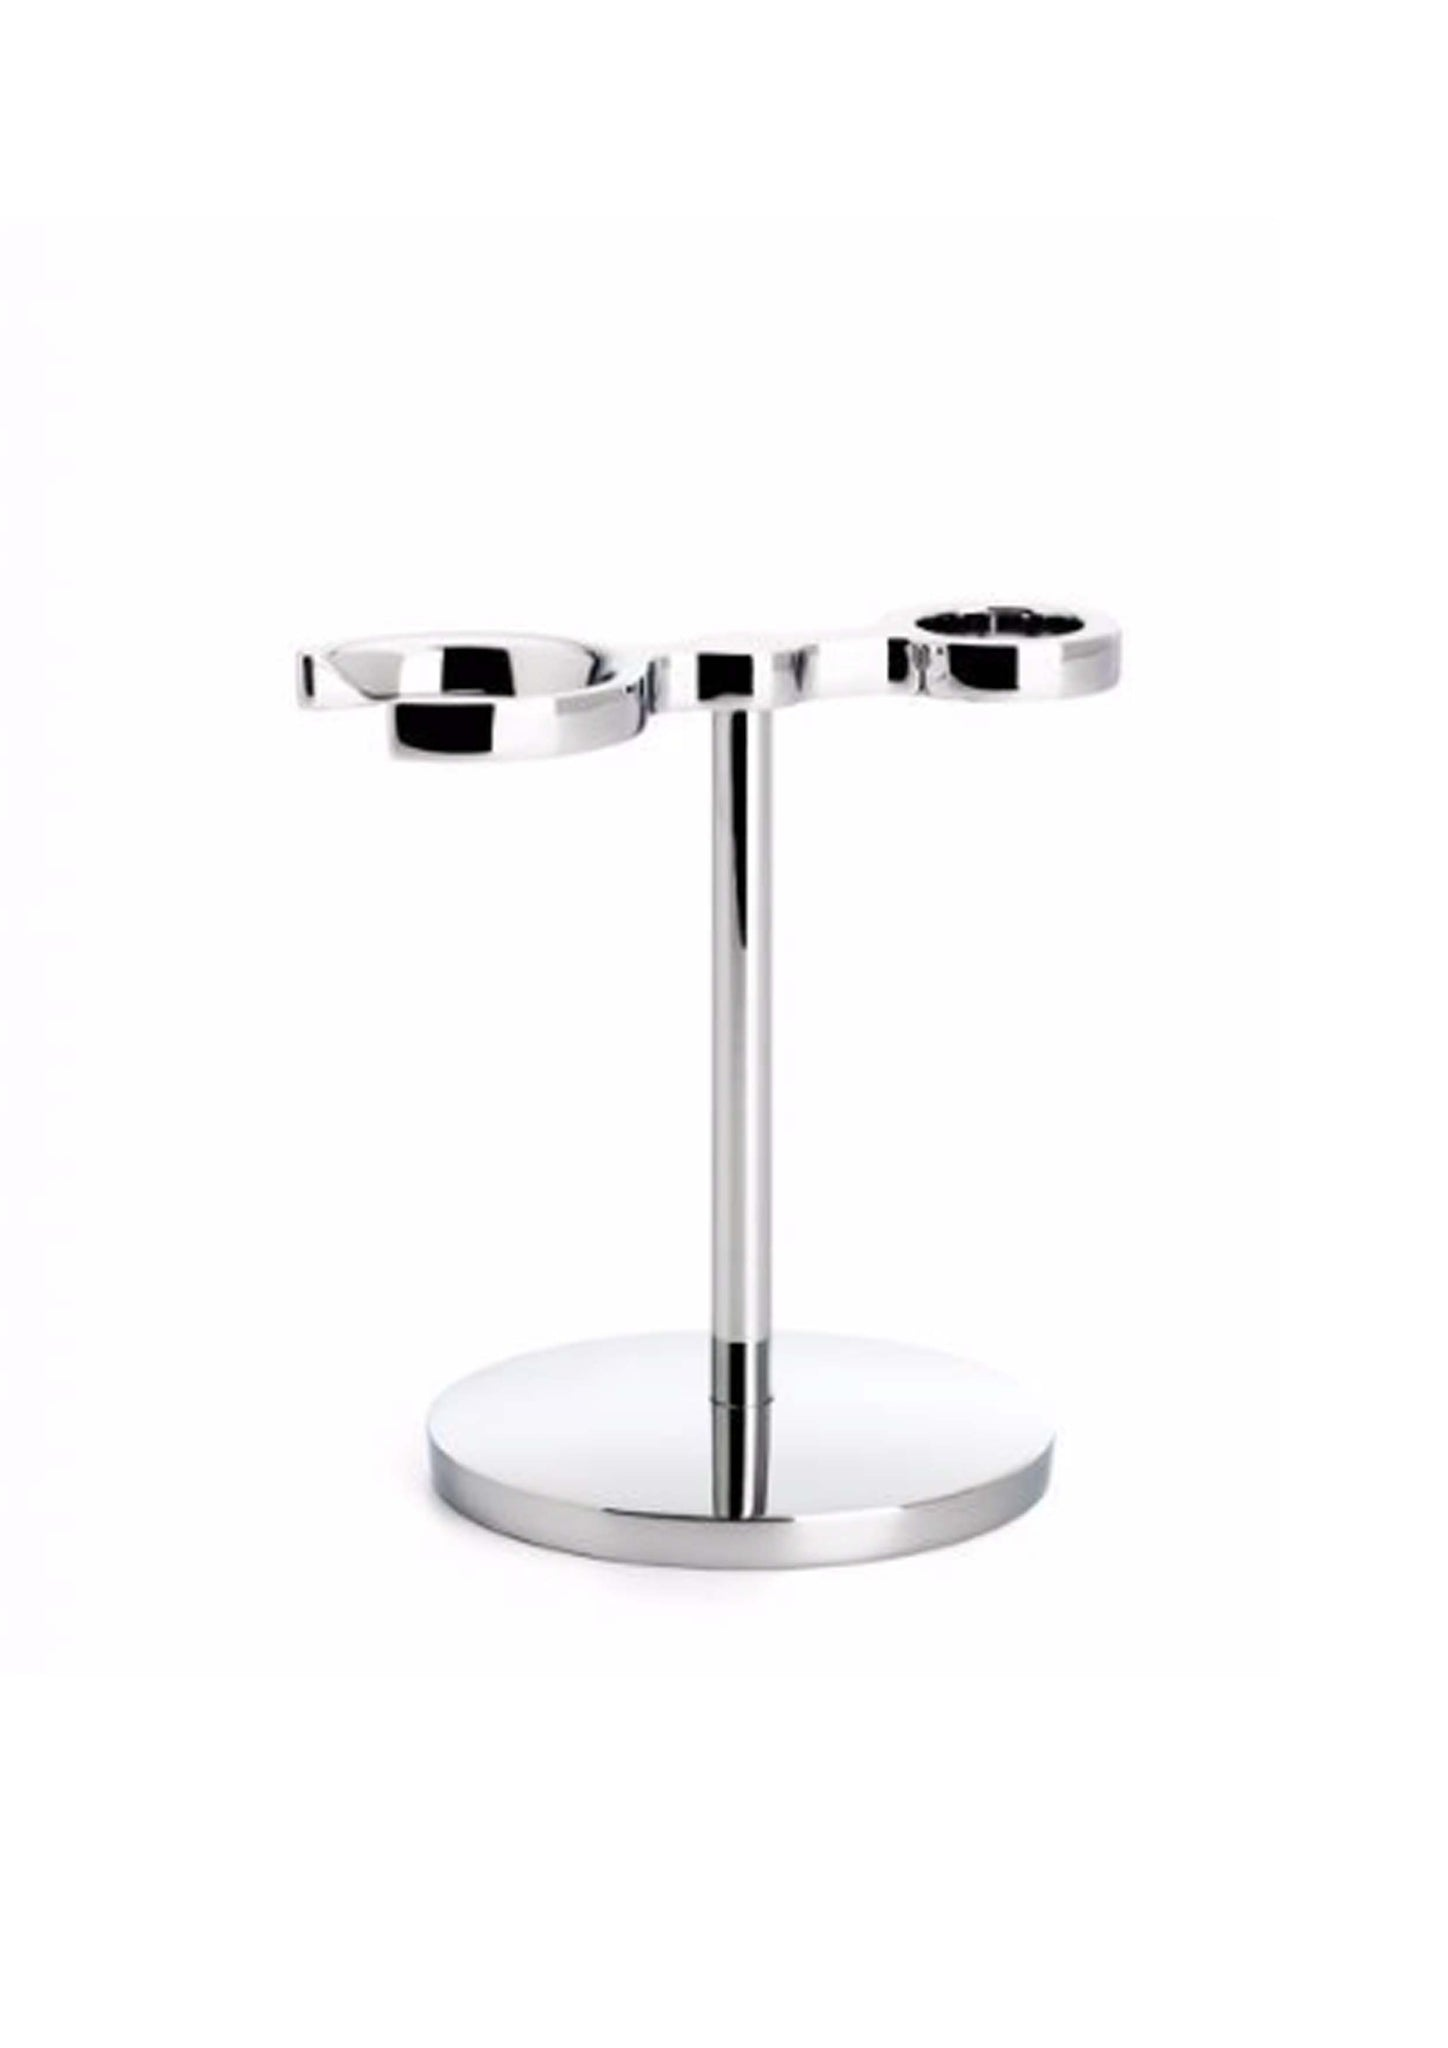 Muhle, CHROME STAND FOR STYLO SHAVING BRUSH & RAZOR RHM70 Double Stand